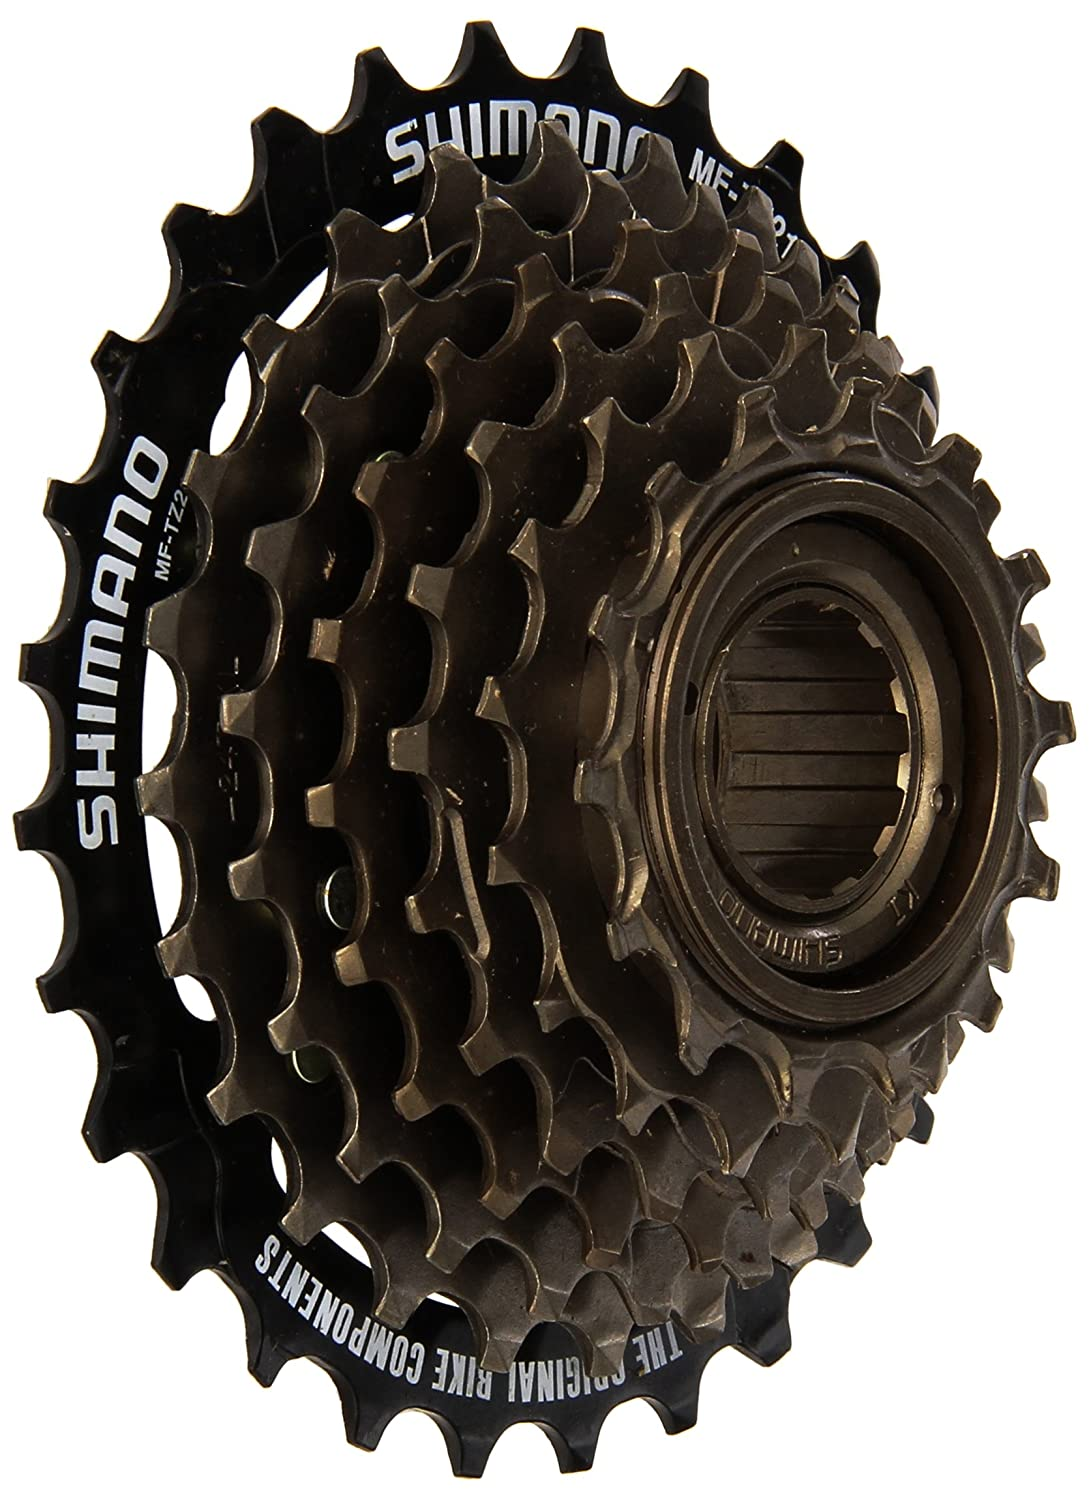 Bicycle Components & Parts Sunrun 11sp Cassette 11-42t Silver/black Sporting Goods